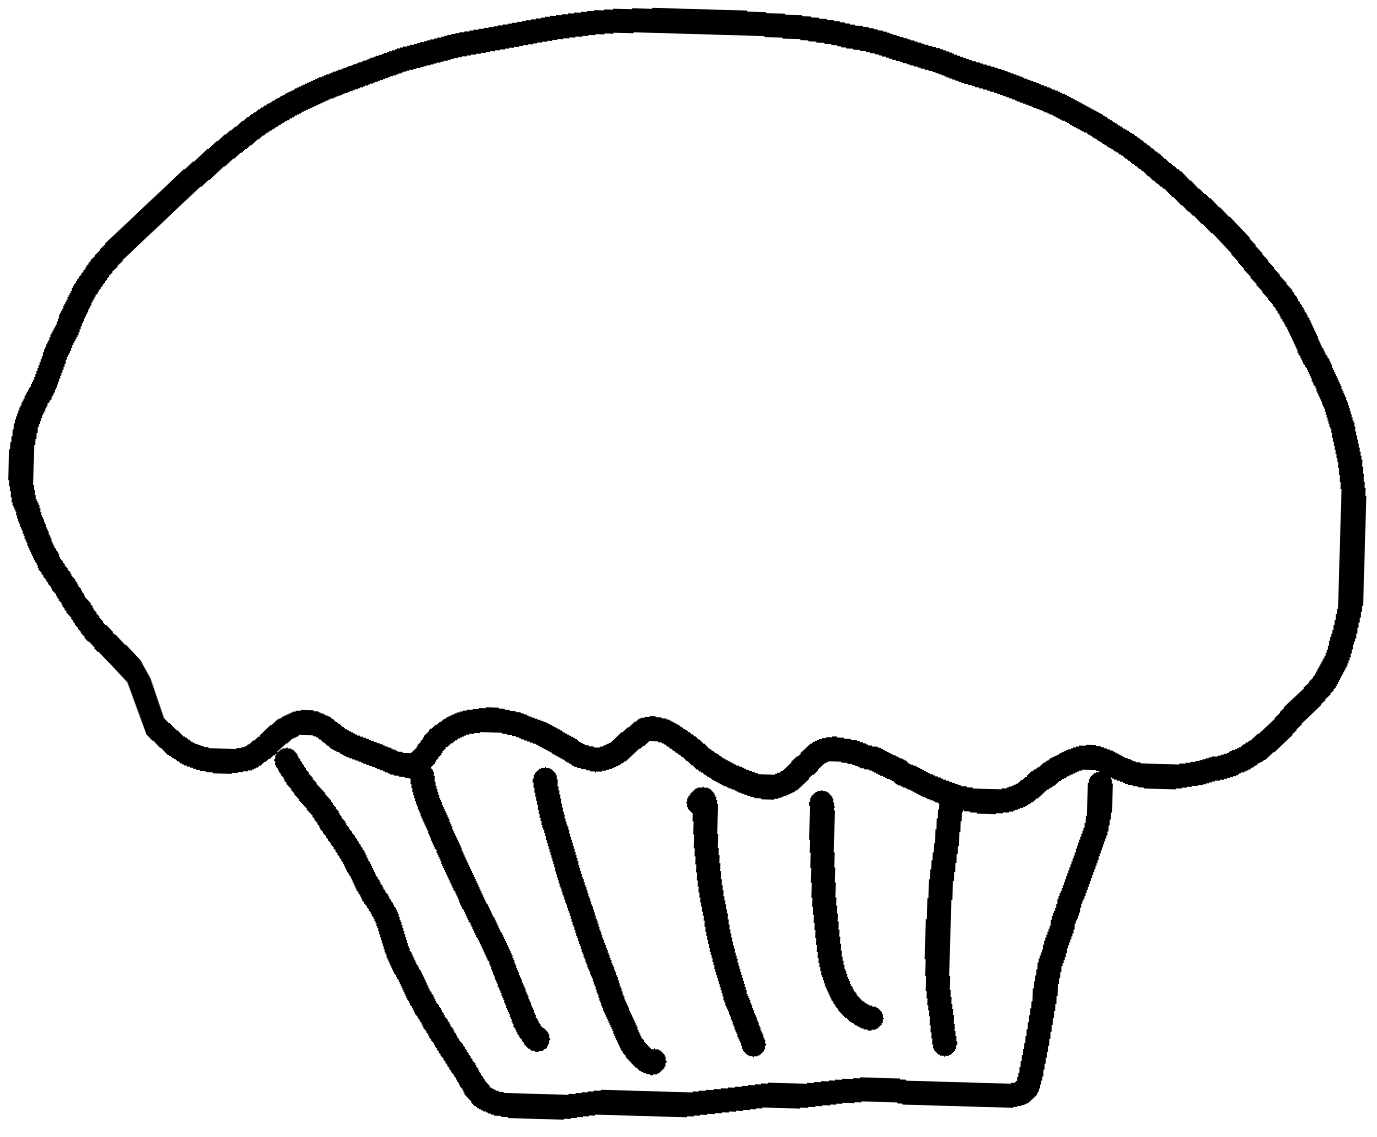 Black And White Cupcake Clipart Cupcake Clipart